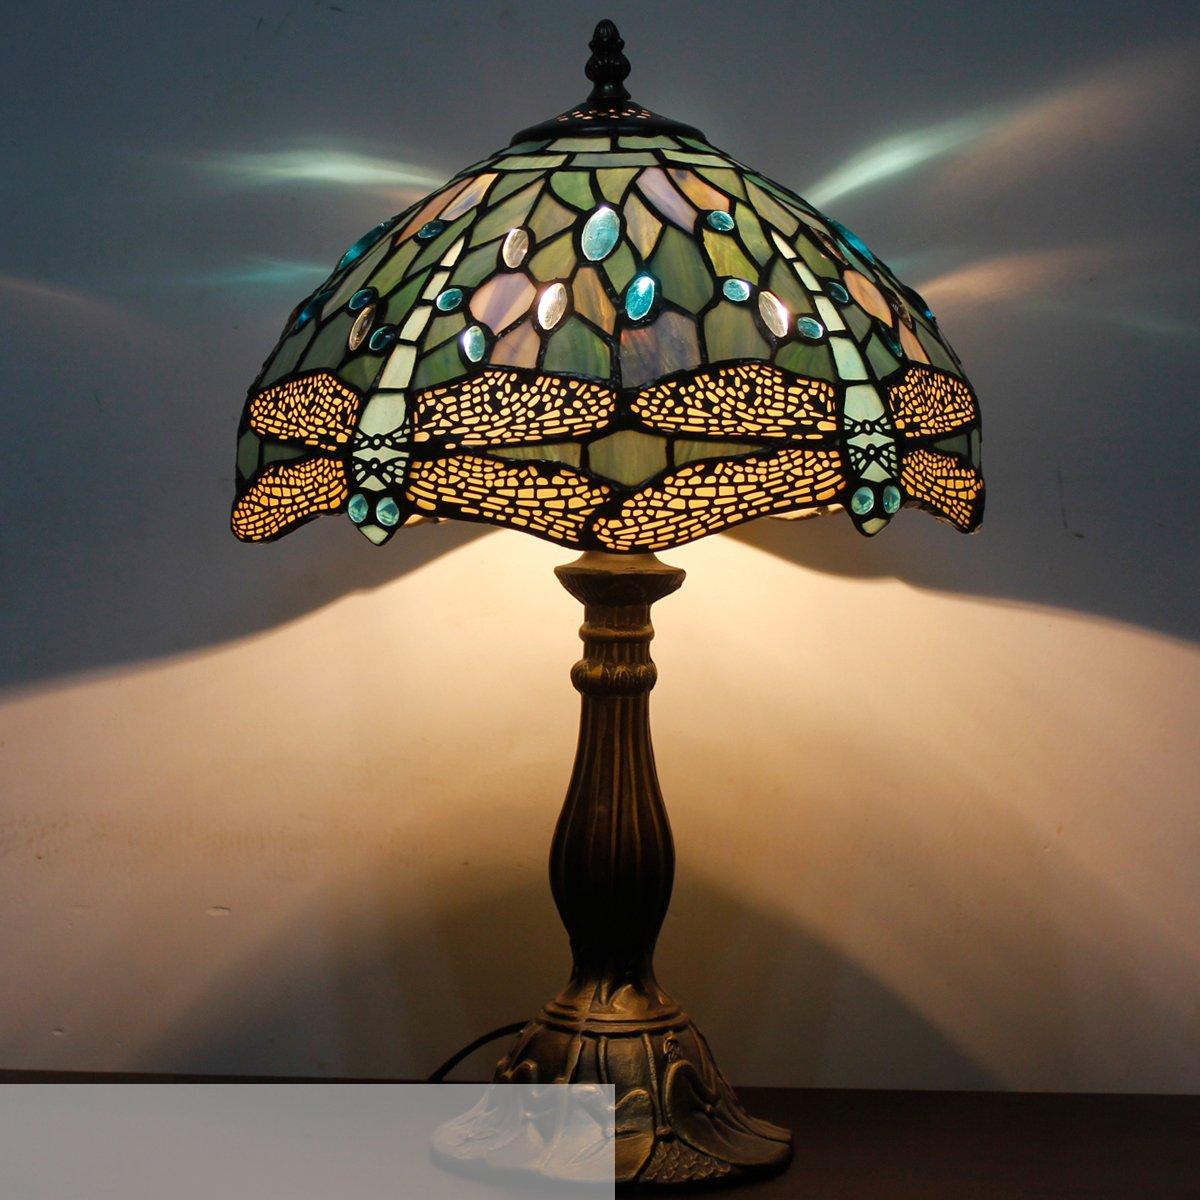 Tiffany Lamp With Sea Blue Stained Glass and Crystal Bead Dragonfly Table Lamp In Height 18 Inch For Living Room by WERFACTORY (Image #8)